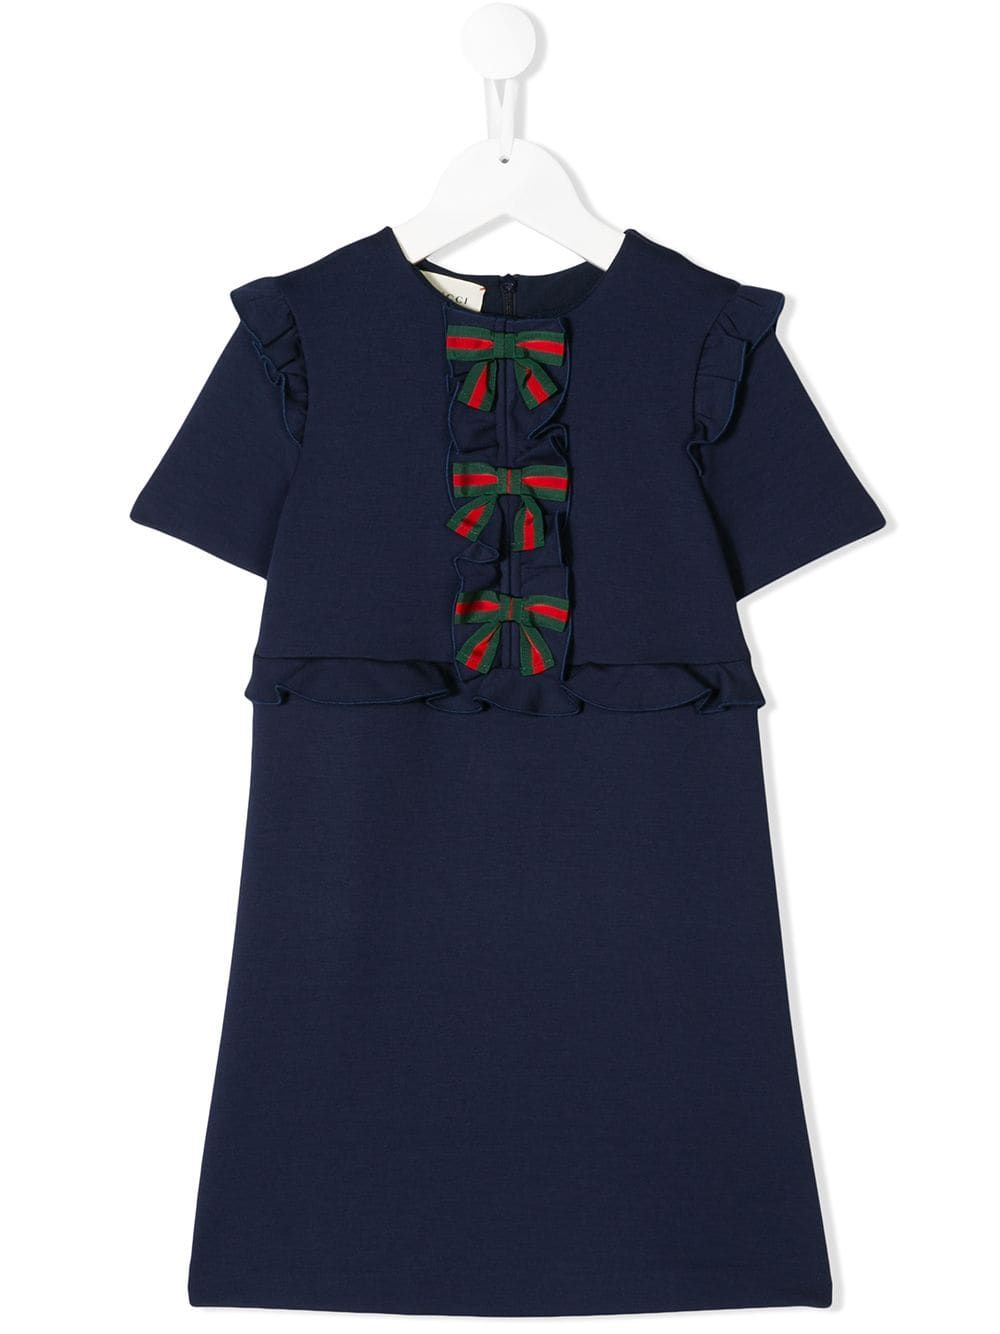 eb97a0d5 Gucci Kids Web bow front dress - Blue in 2019   Products   Gucci ...